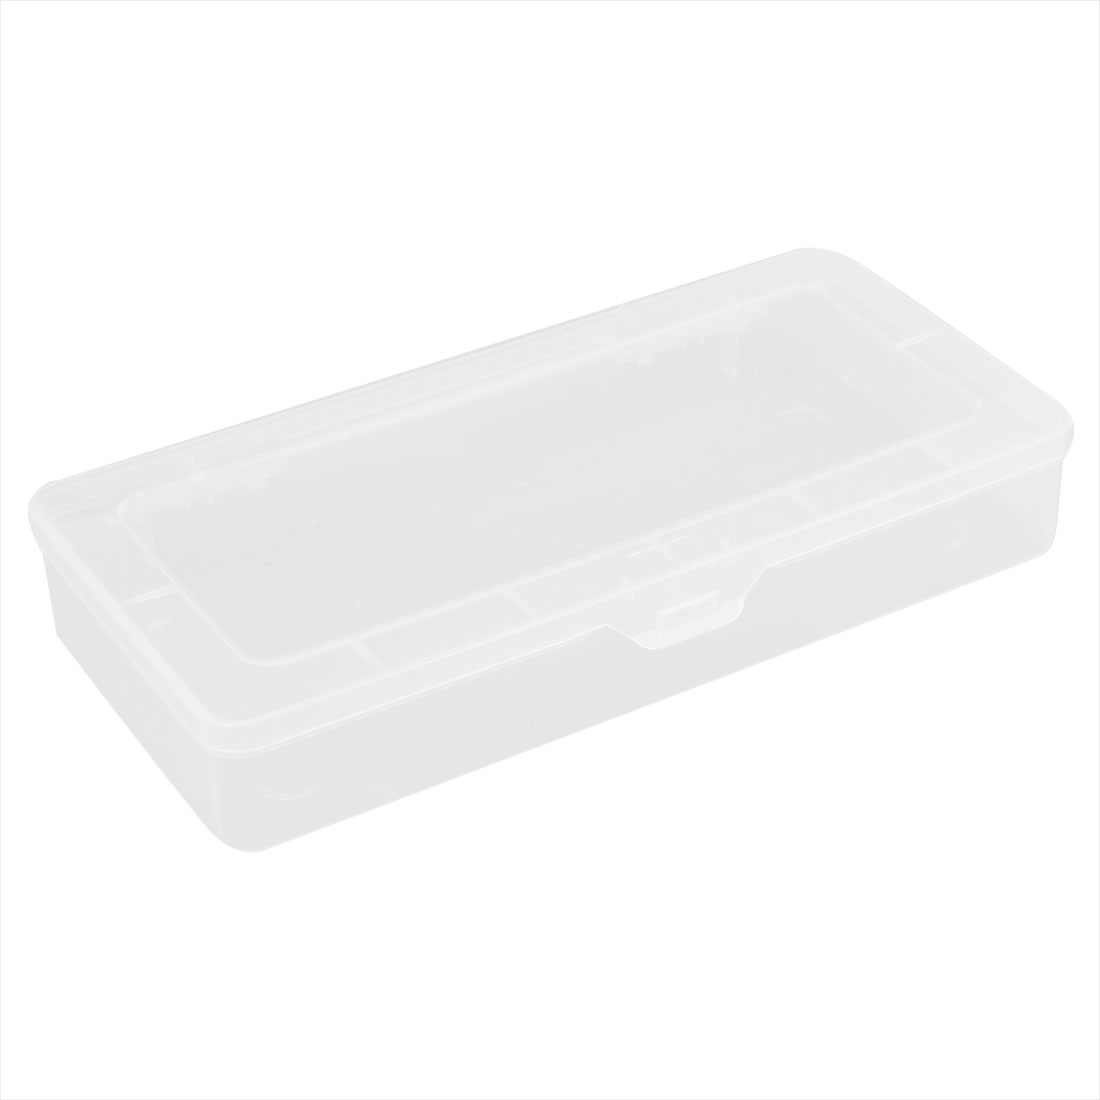 Clear White Plastic Single Slot Electronic Components Storage Case Box 260x125x40mm